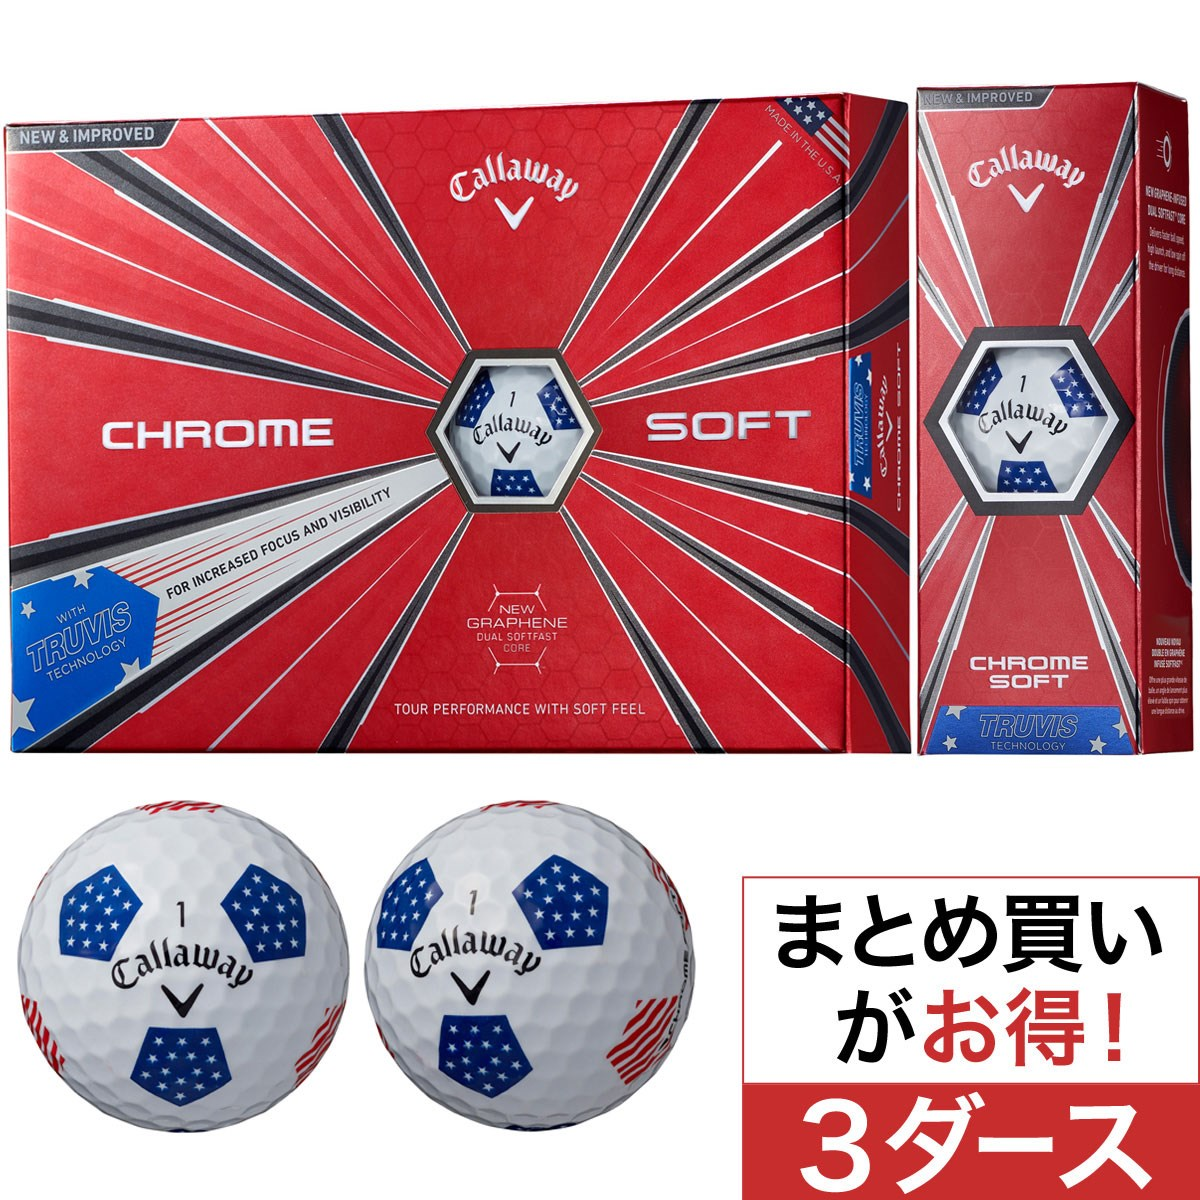 CHROME SOFT 18 TRUVIS ボール 3ダースセット